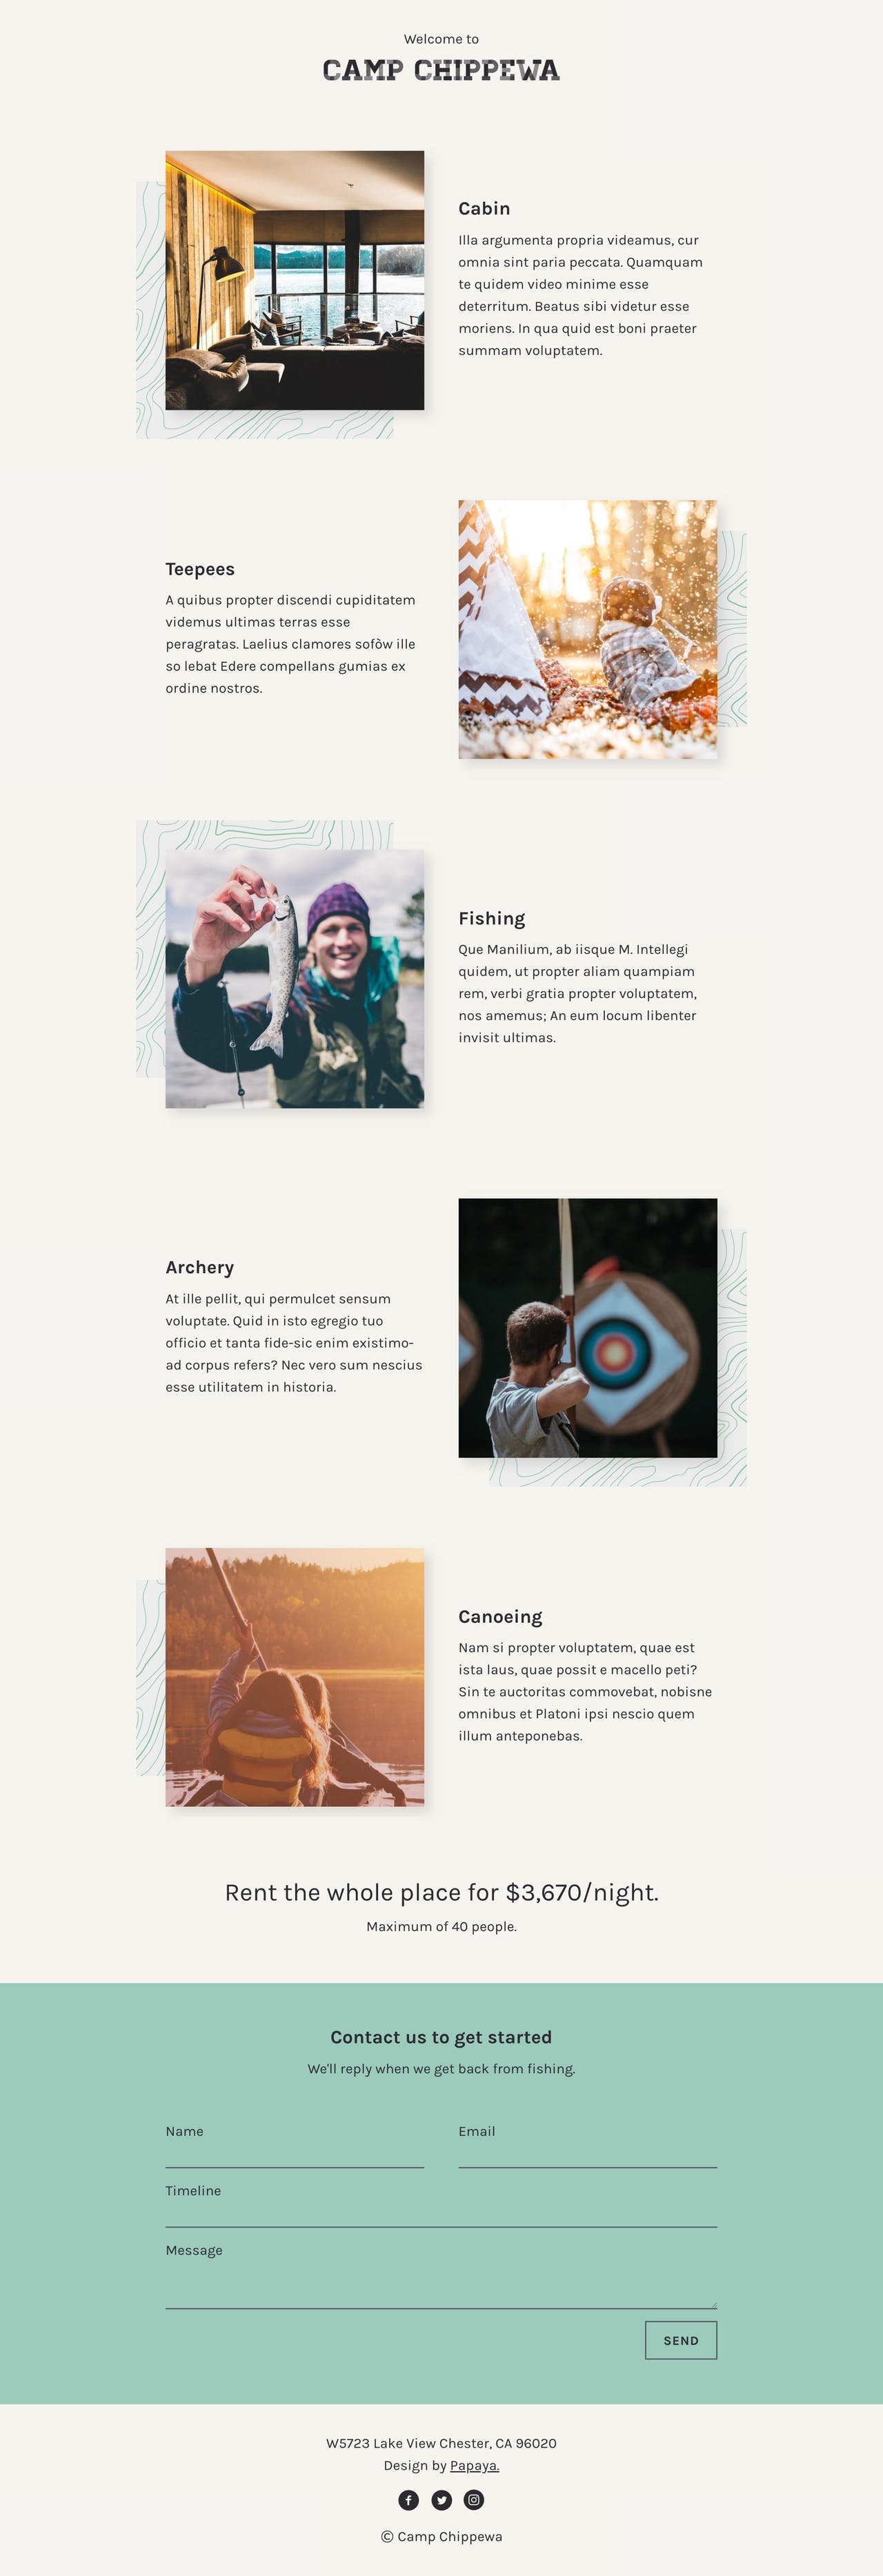 Landing Page HTML Template for a Camp or Tour